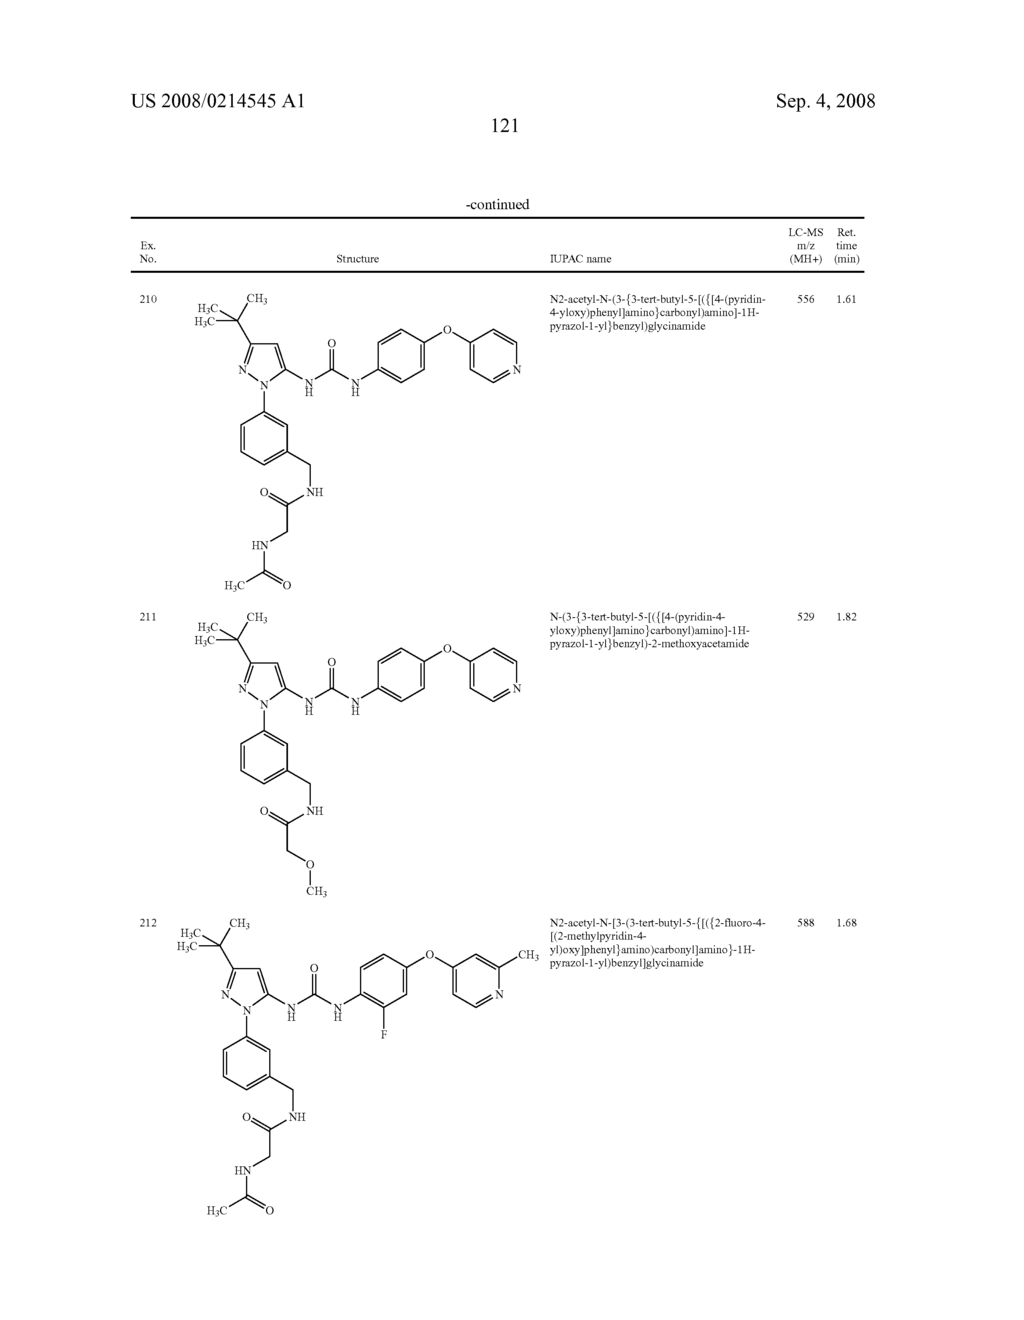 Substituted Pyrazolyl Urea Derivatives Useful in the Treatment of Cancer - diagram, schematic, and image 122